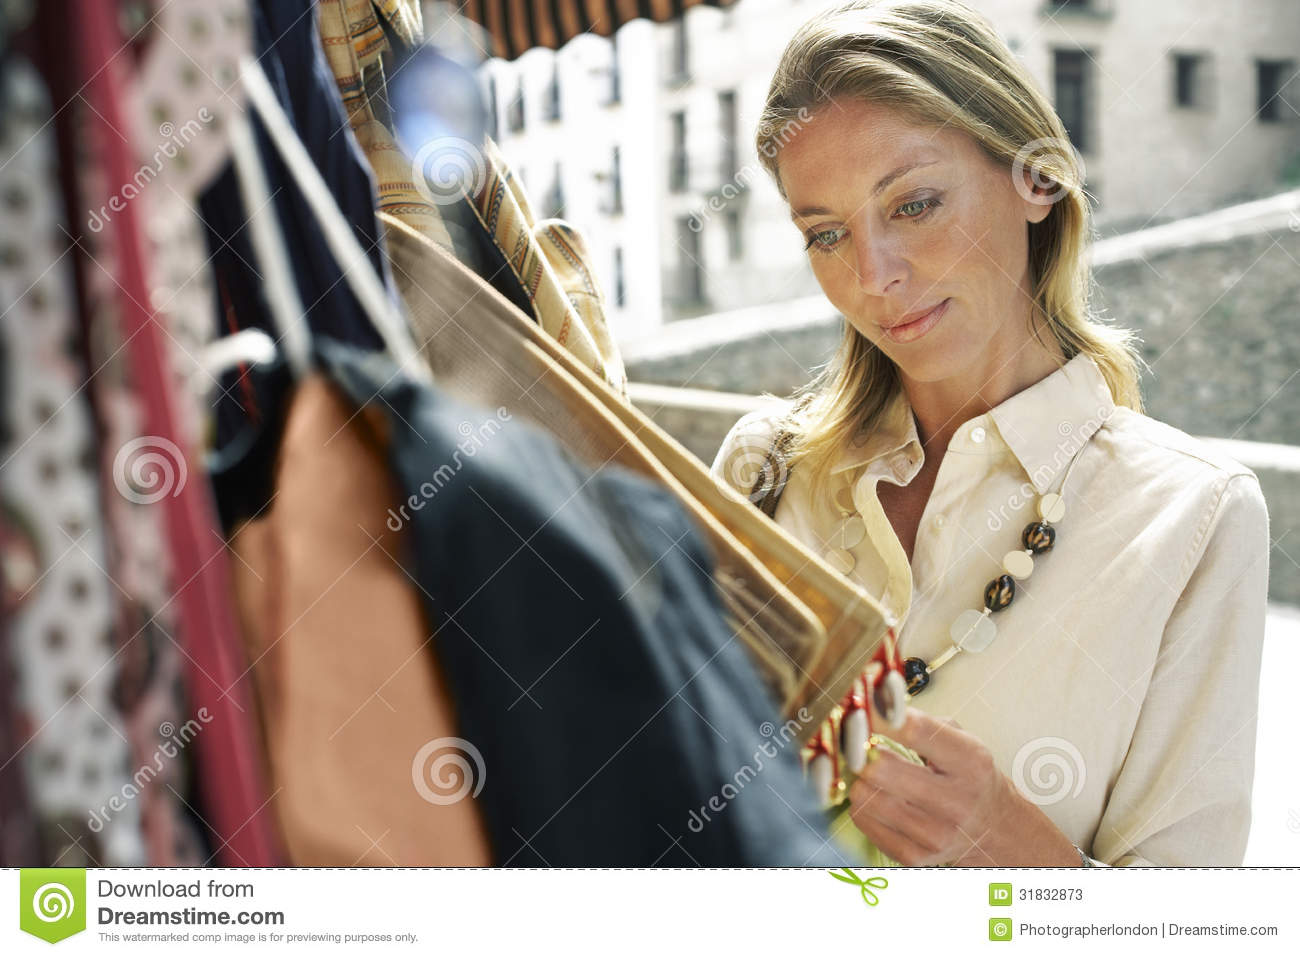 Woman Shopping For Bags On Market Stall Stock Image - Image of ... 9a67702996b6f